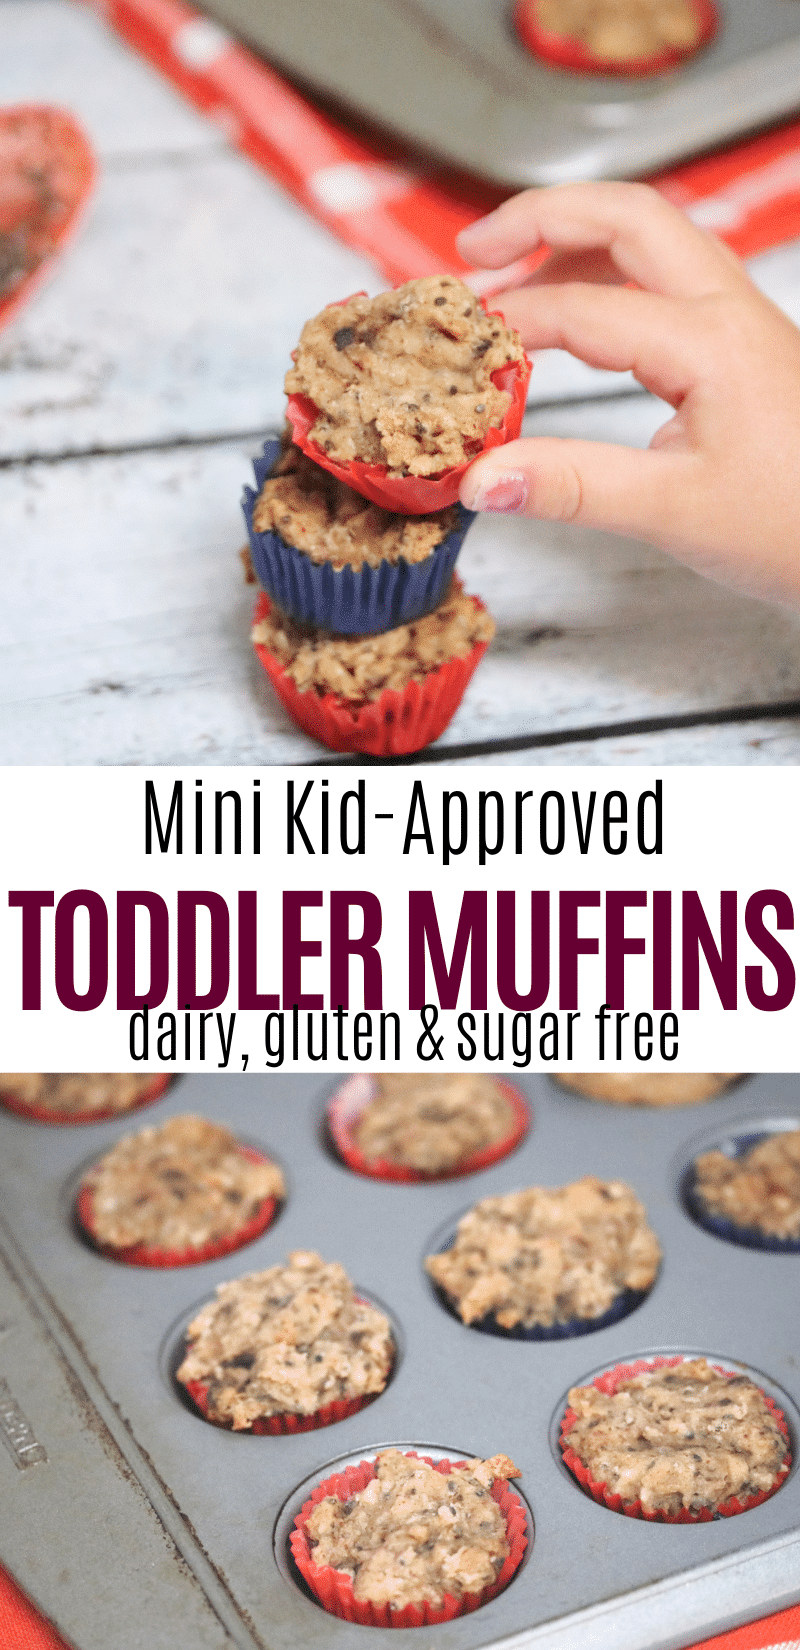 Pinterest image with text: two images the top of of three bite-sized toddler muffins stacked on top of each other with a toddlers hand reaching for them and with chia seeds and a white ramekin with more muffins behind them the bottom of the muffins in a muffin pan